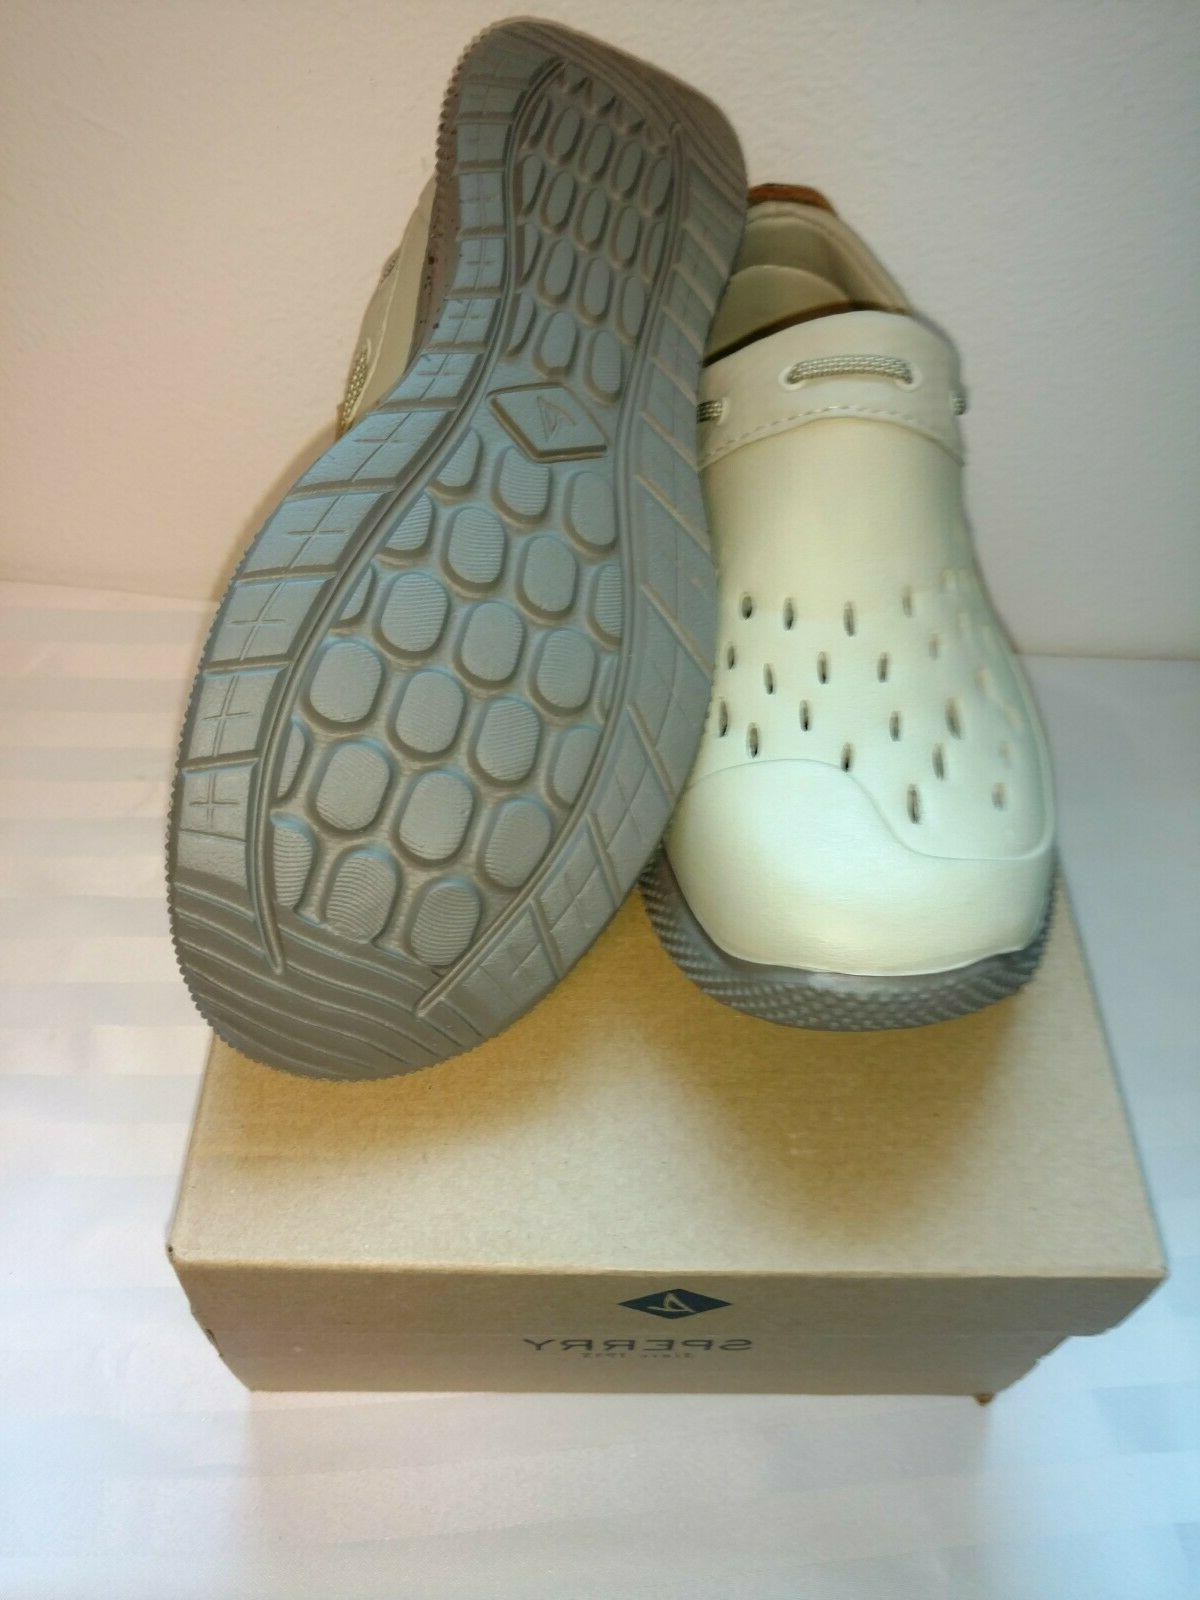 New 8M Top-Sider Seafront Men's Water Shoes